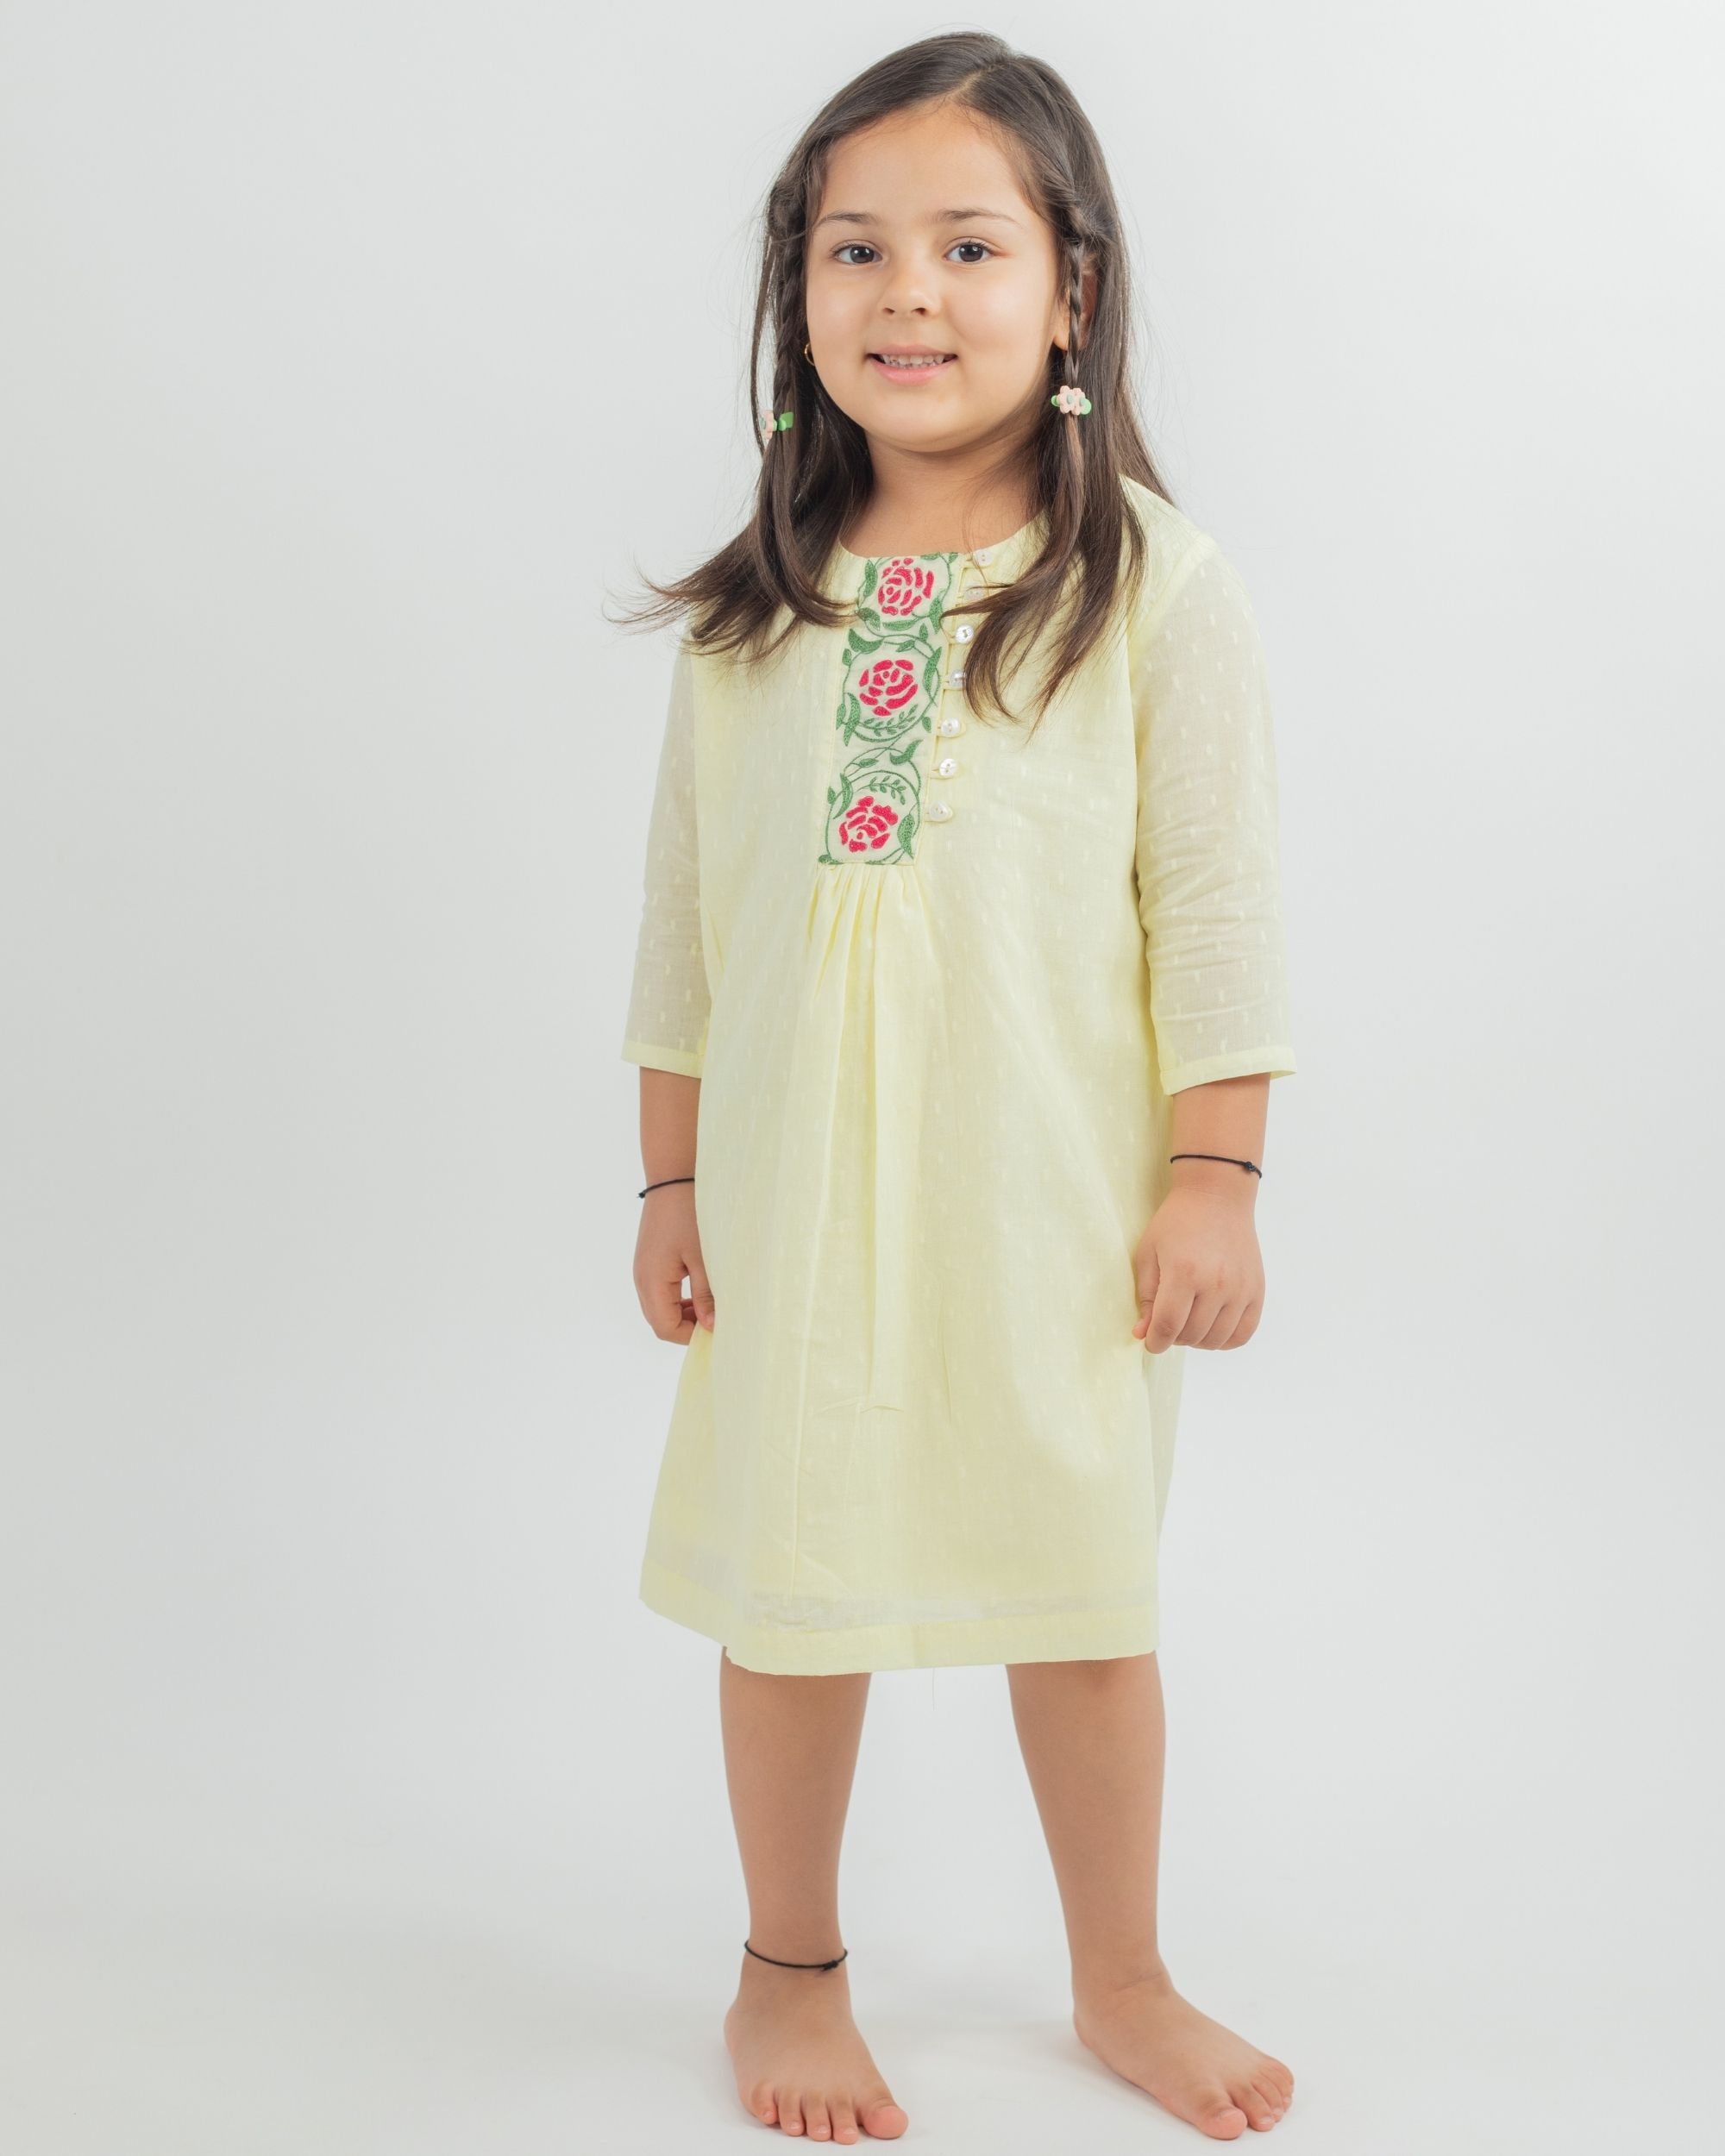 Pastel yellow hand embroidered floral yoke dress